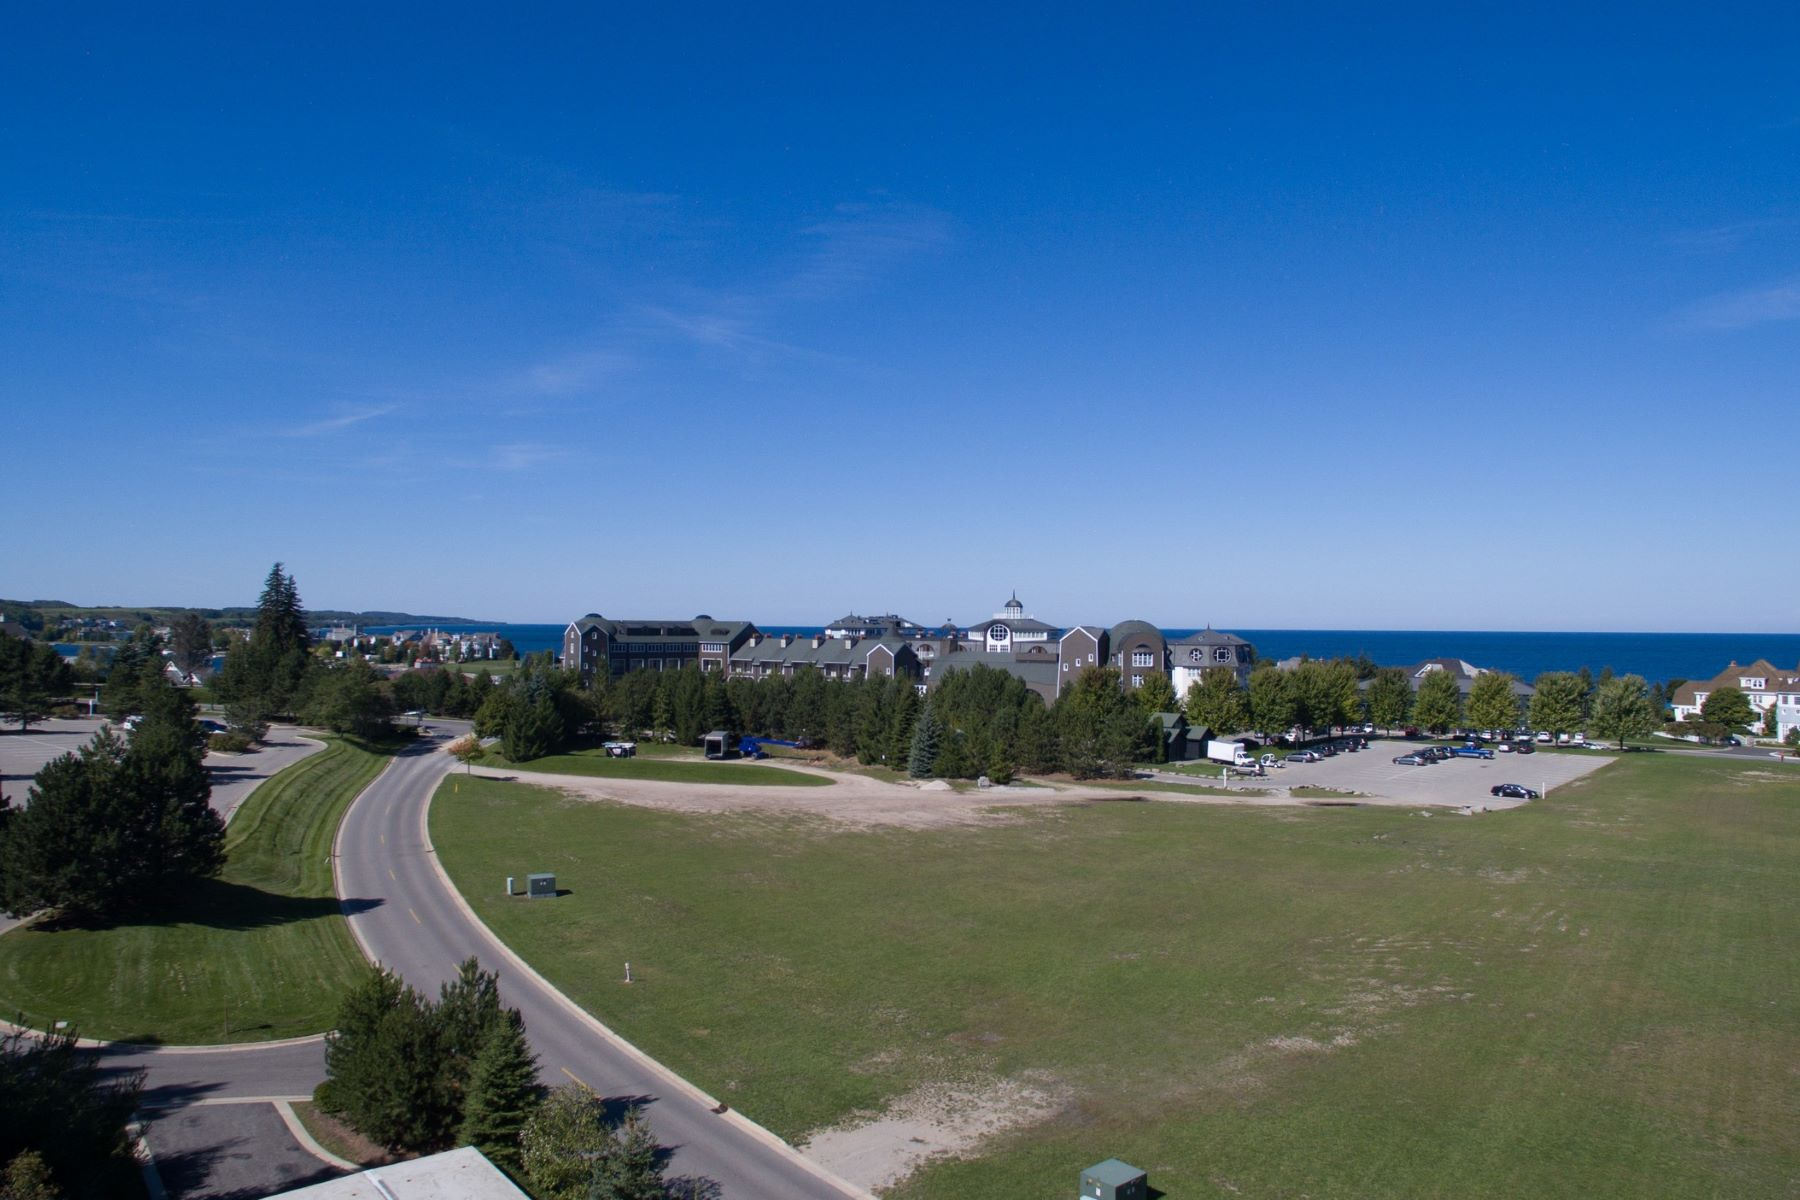 Land for Sale at Unit 1, The Ridge TBD Cliffs Drive, Unit 1, The Ridge Bay Harbor, Michigan, 49770 United States